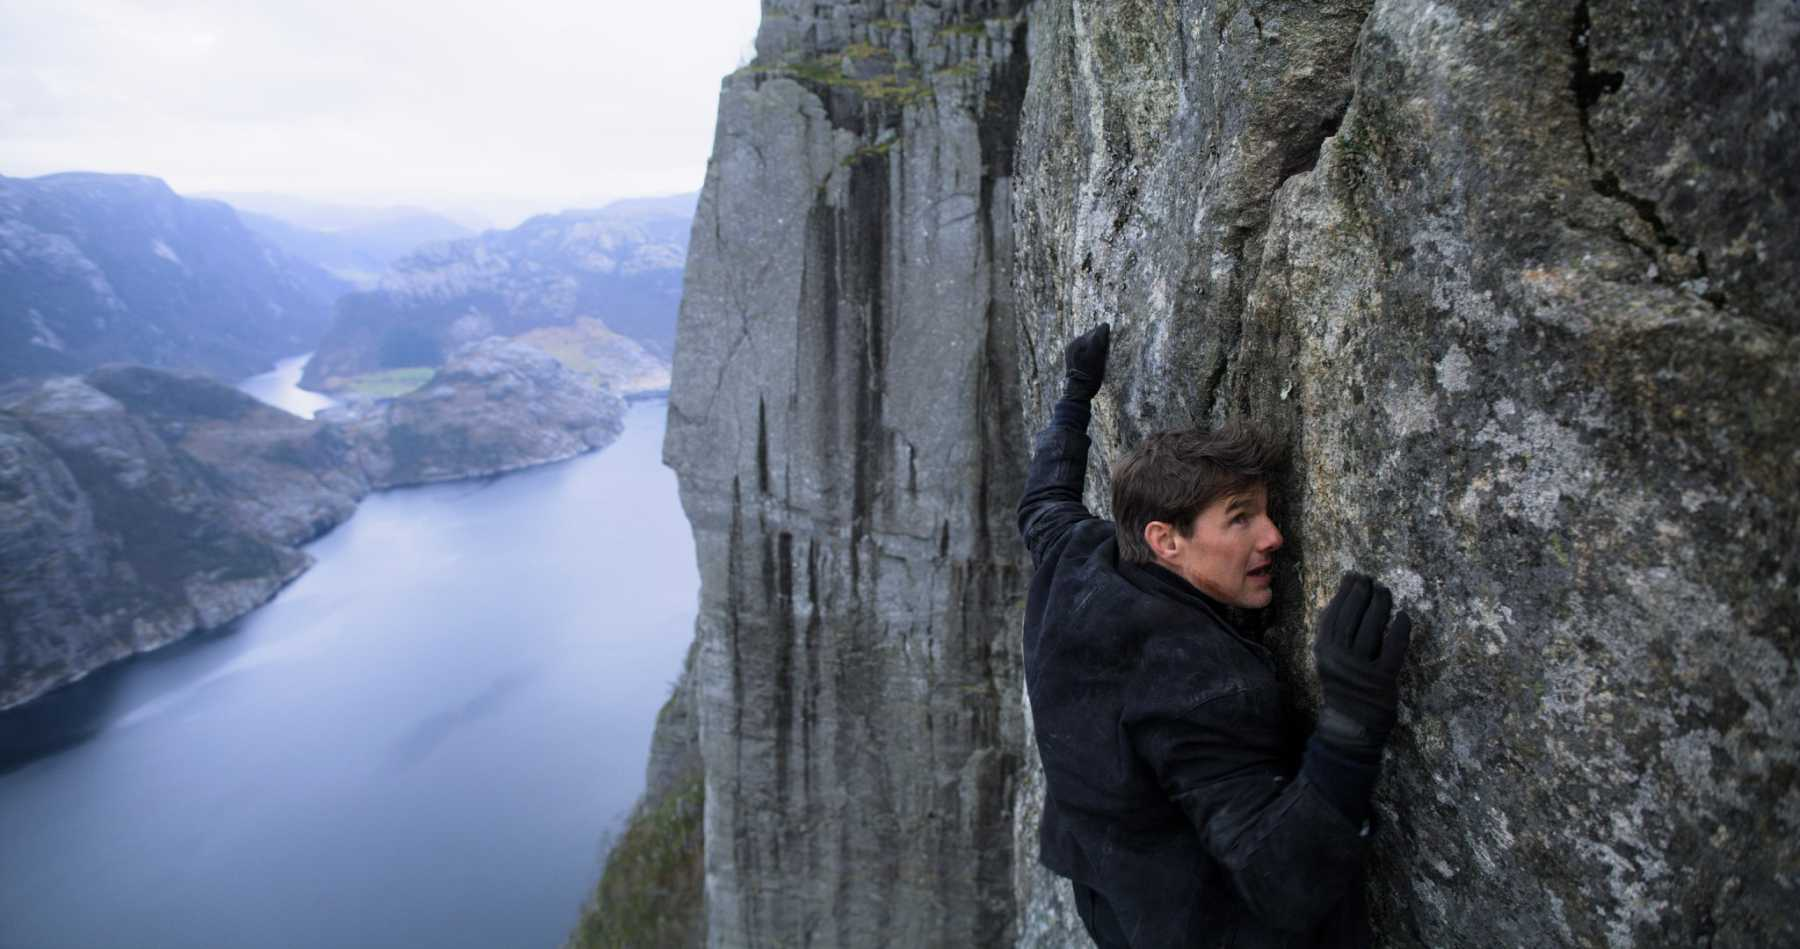 Watch Tom Cruise in 'Mission: Impossible' Death-Defying Helicopter Stunt